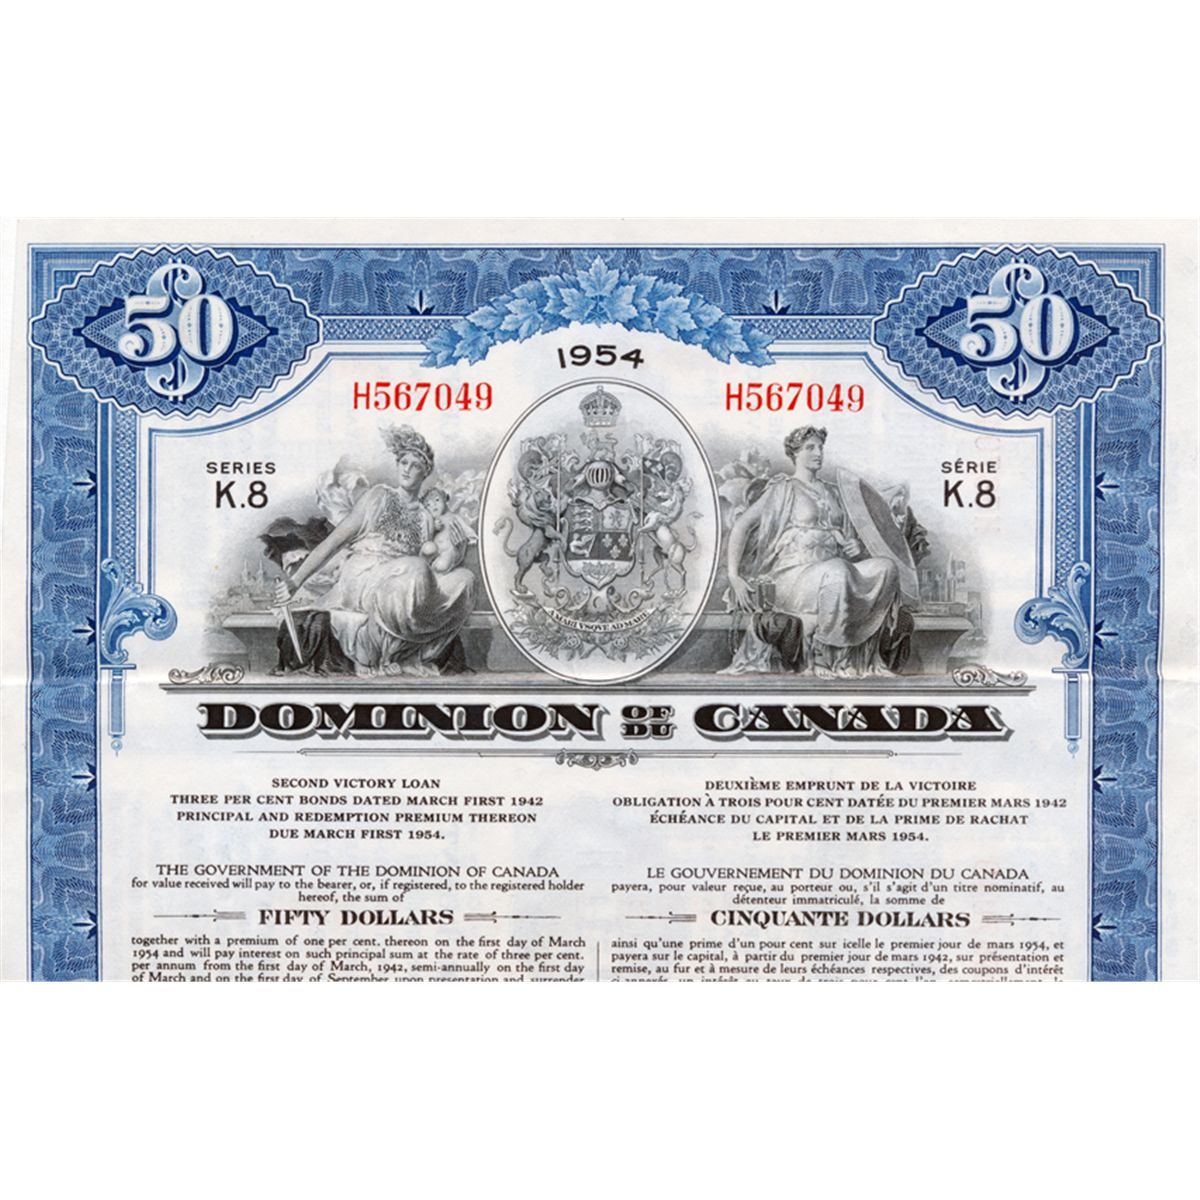 When you were born your government forged your name and created a dominion of canada bond aiddatafo Gallery